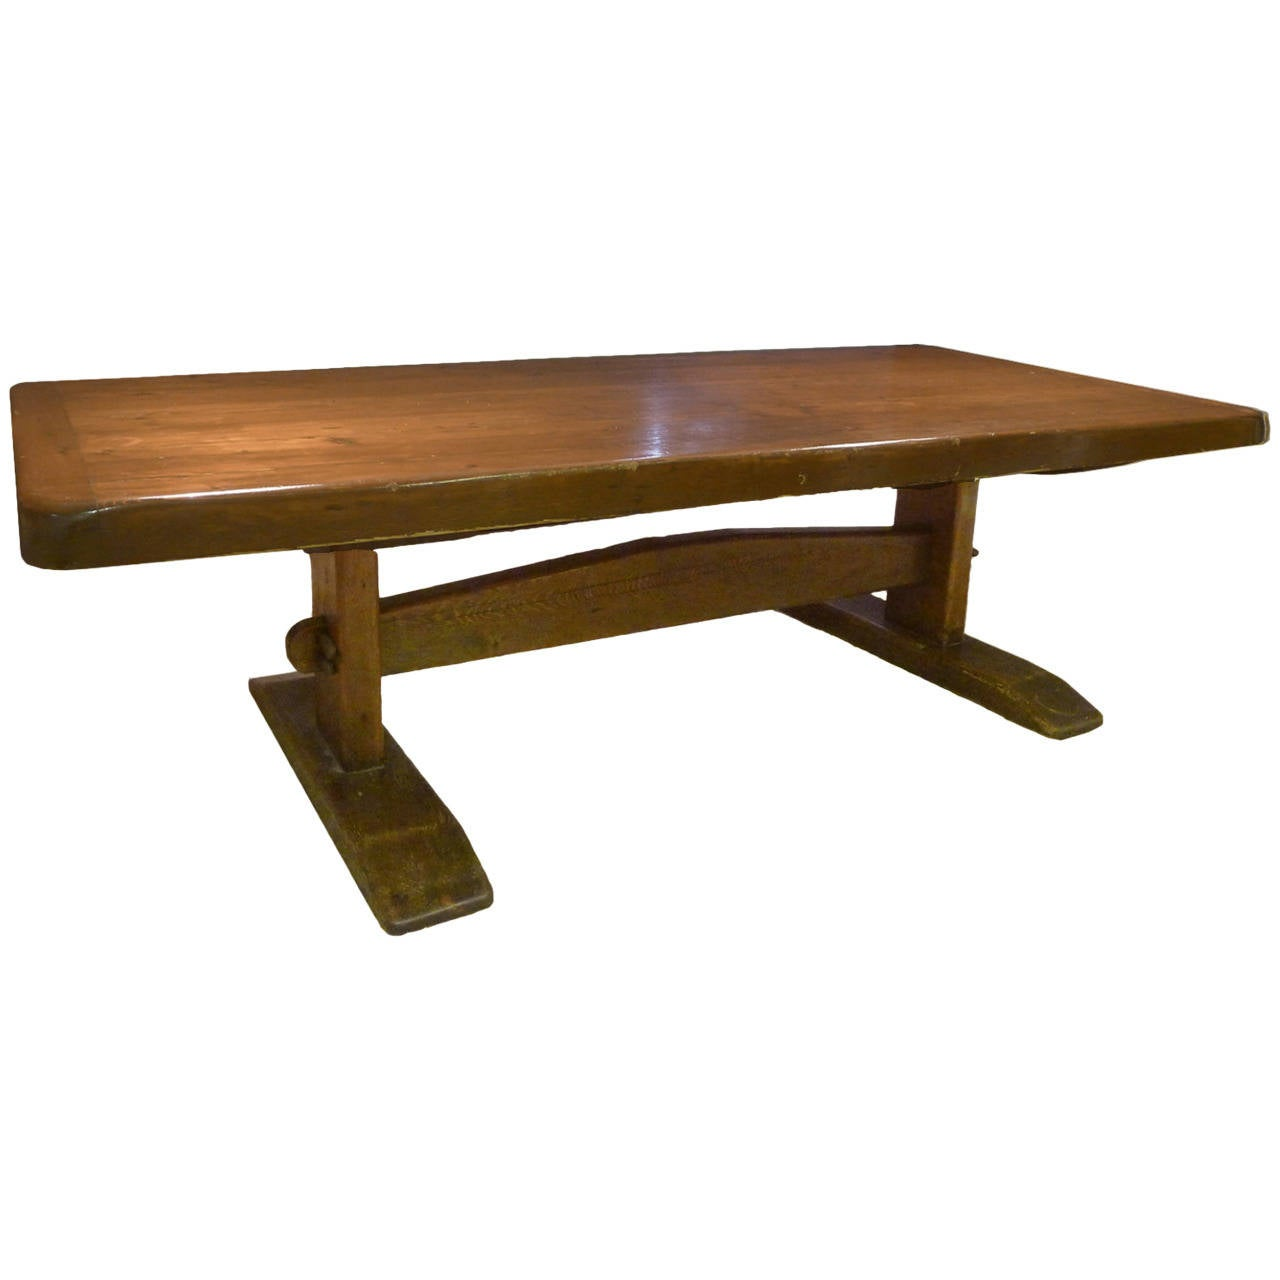 Monumental 8 1 2 Foot Long Early American Solid Pine Trestle Farm Table 1